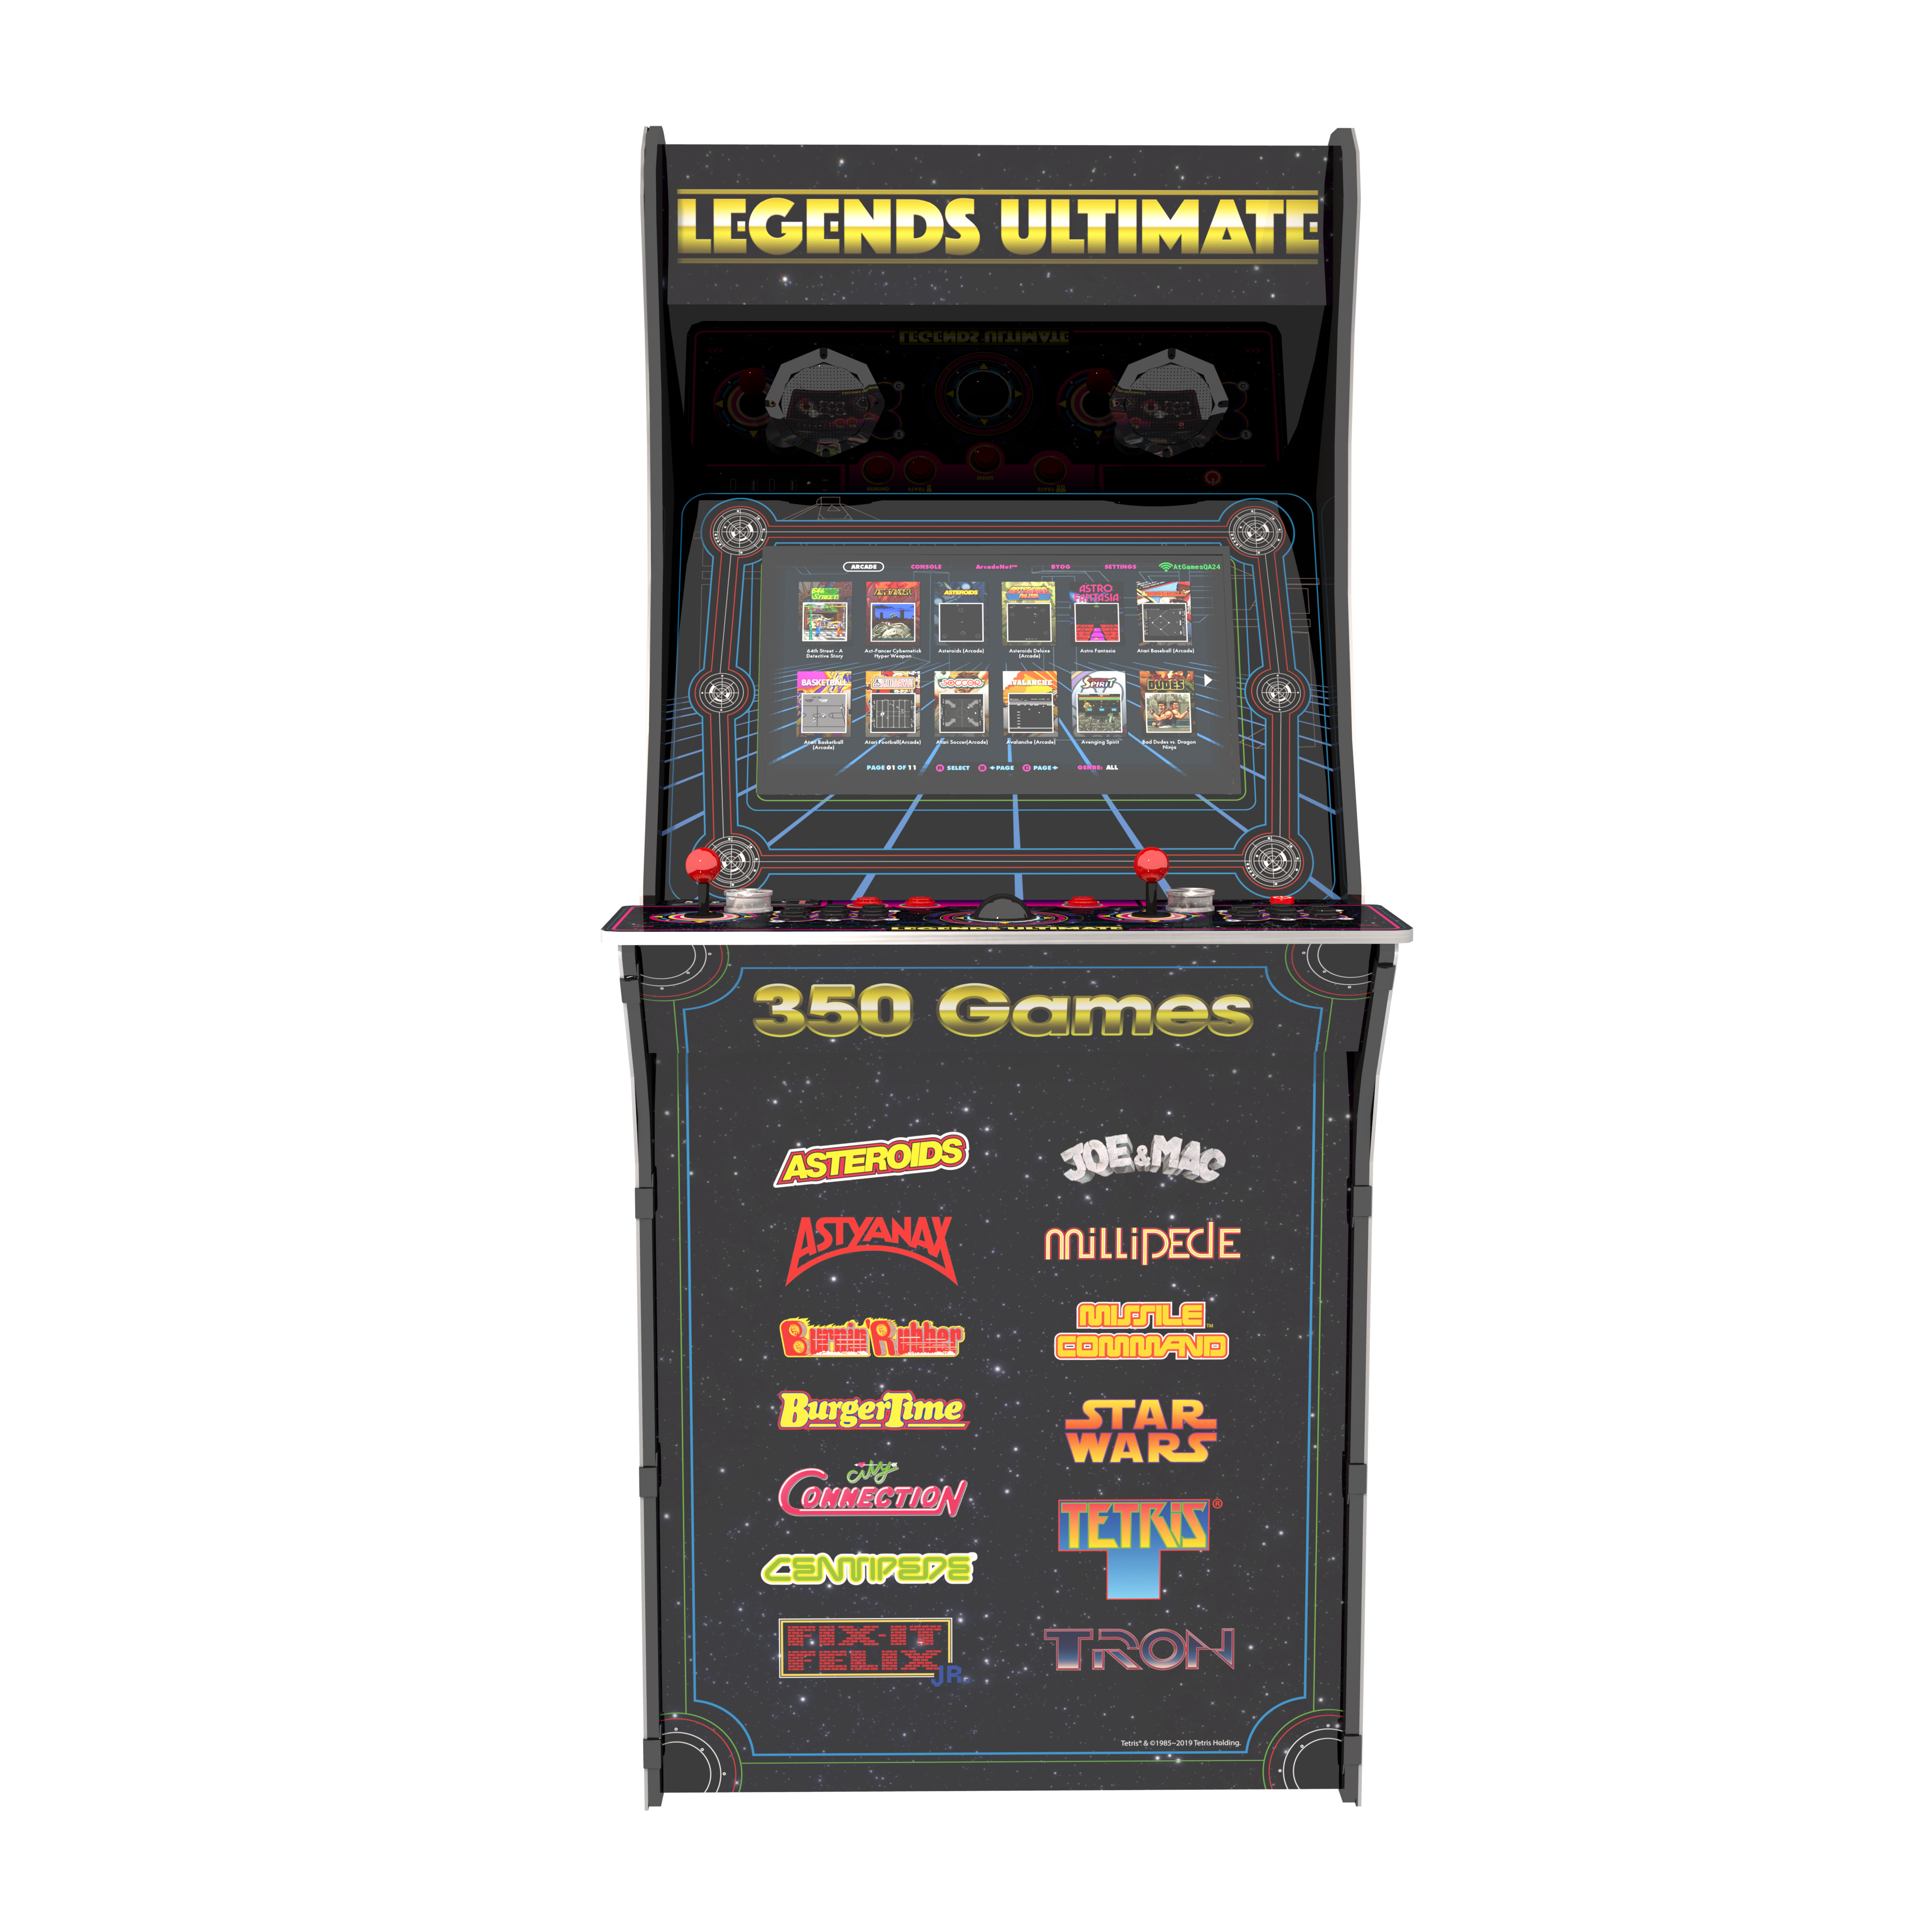 AtGames new, full-sized, Legends Ultimate Arcade Machine